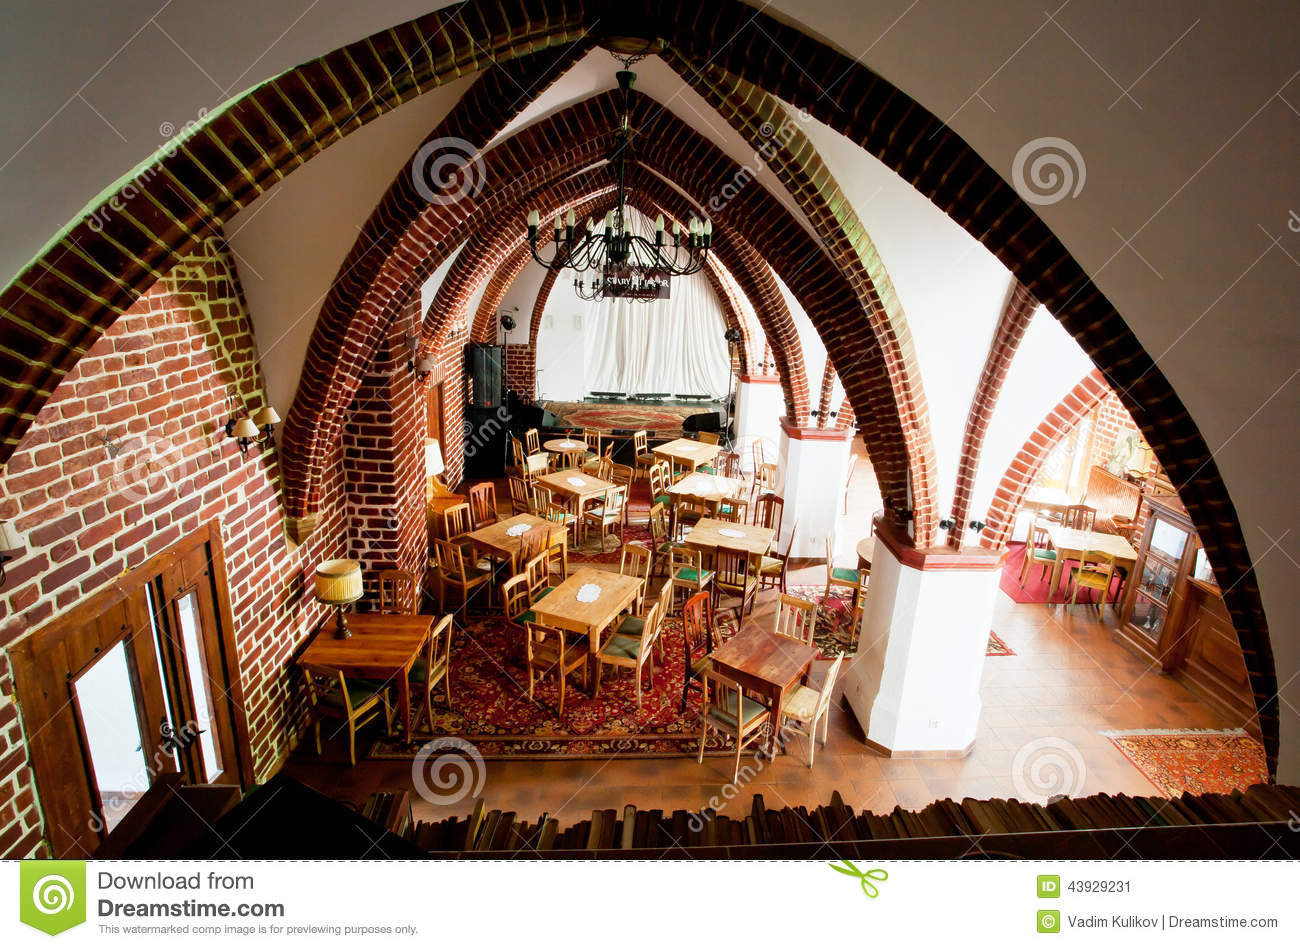 interior of cafe in the old catholic church with brick walls